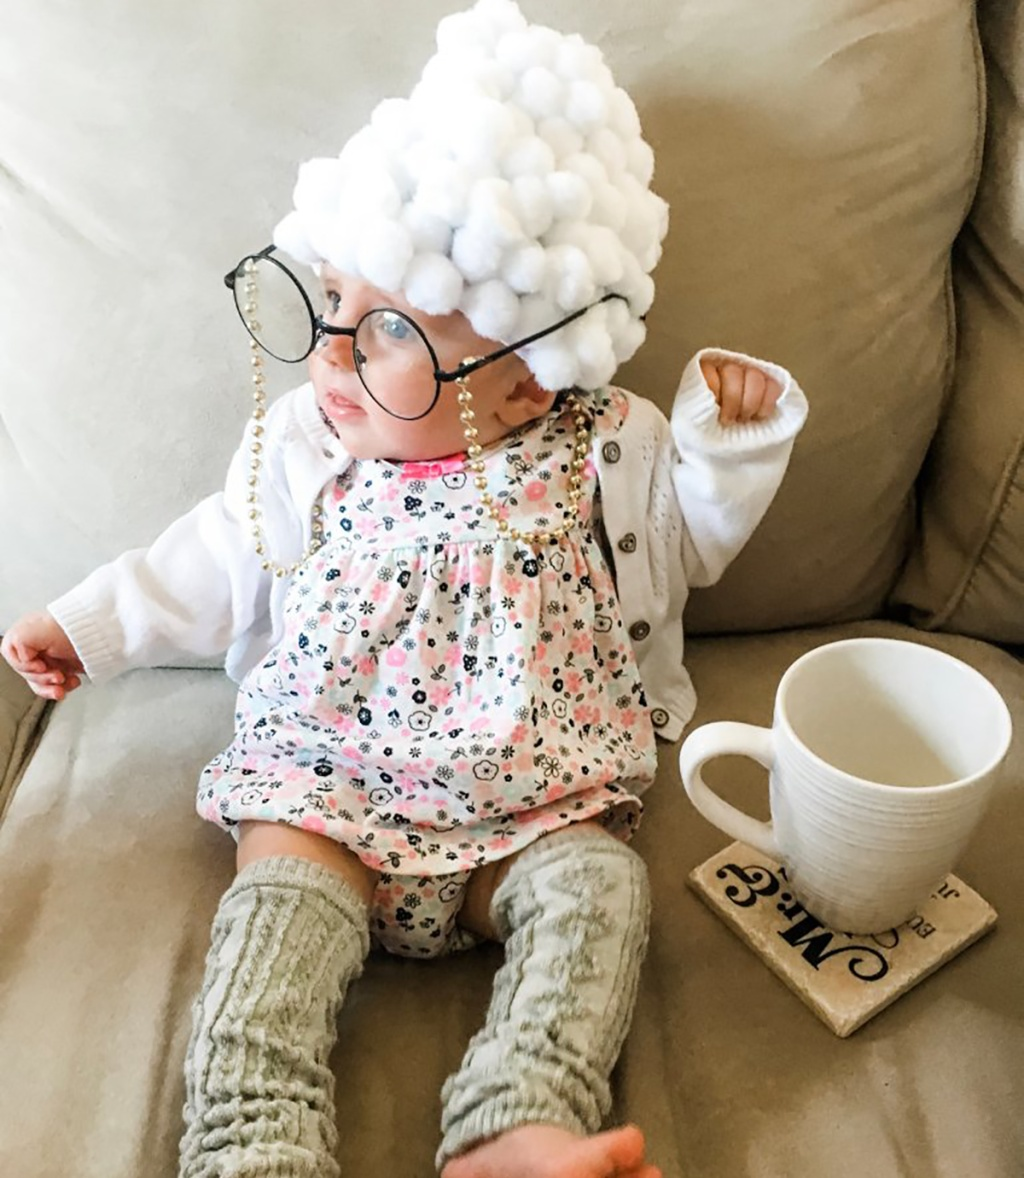 baby dressed in old lady costume